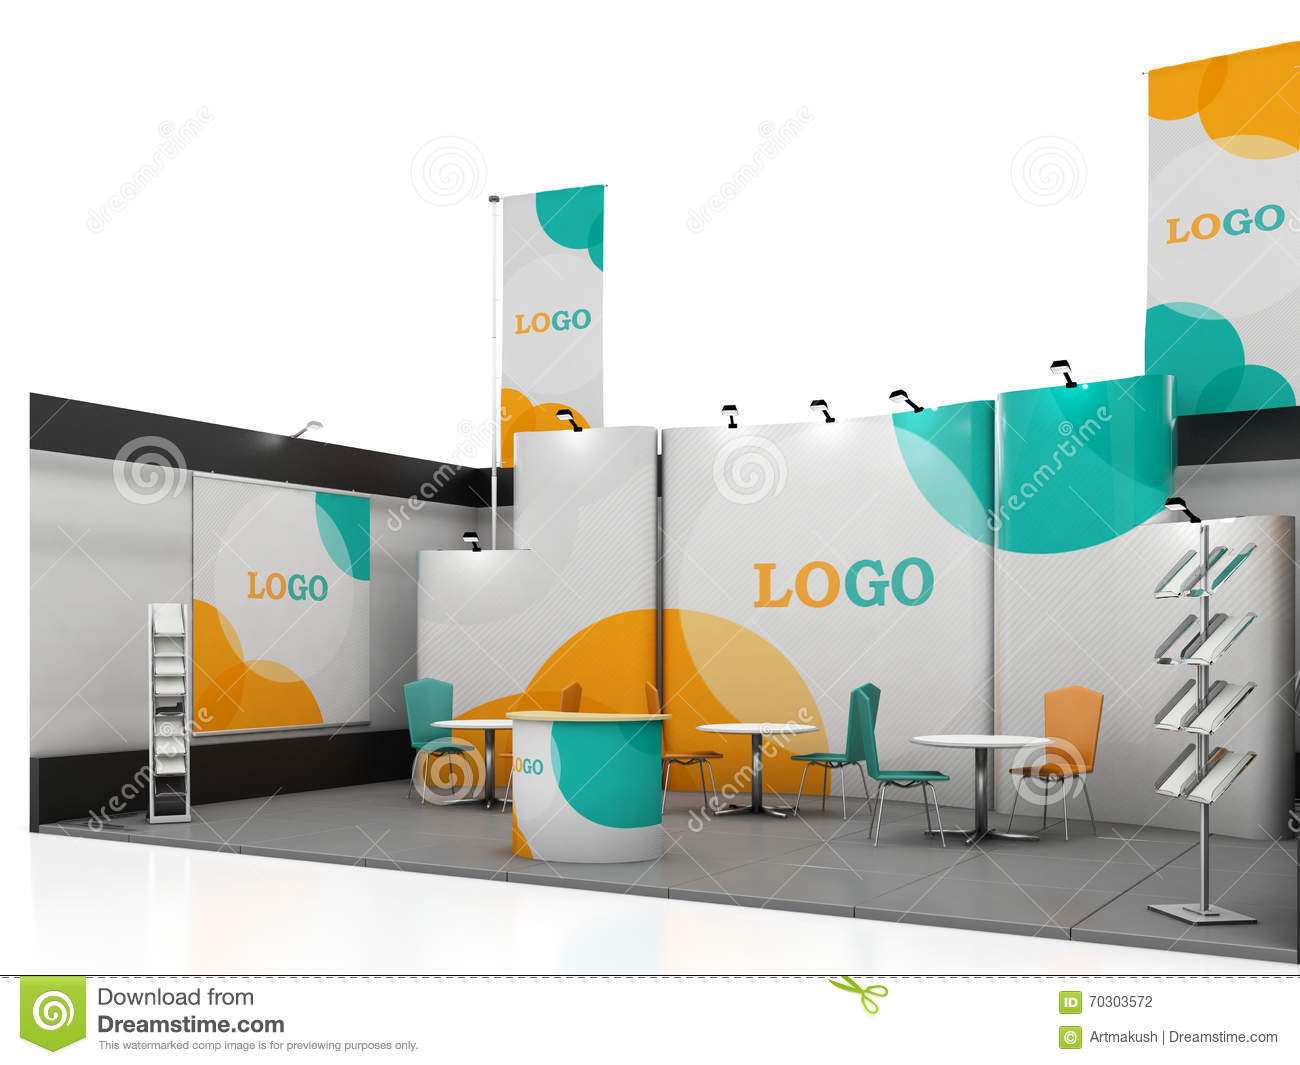 Exhibition Stand Free Vector : Blank creative exhibition stand design with color shapes. booth